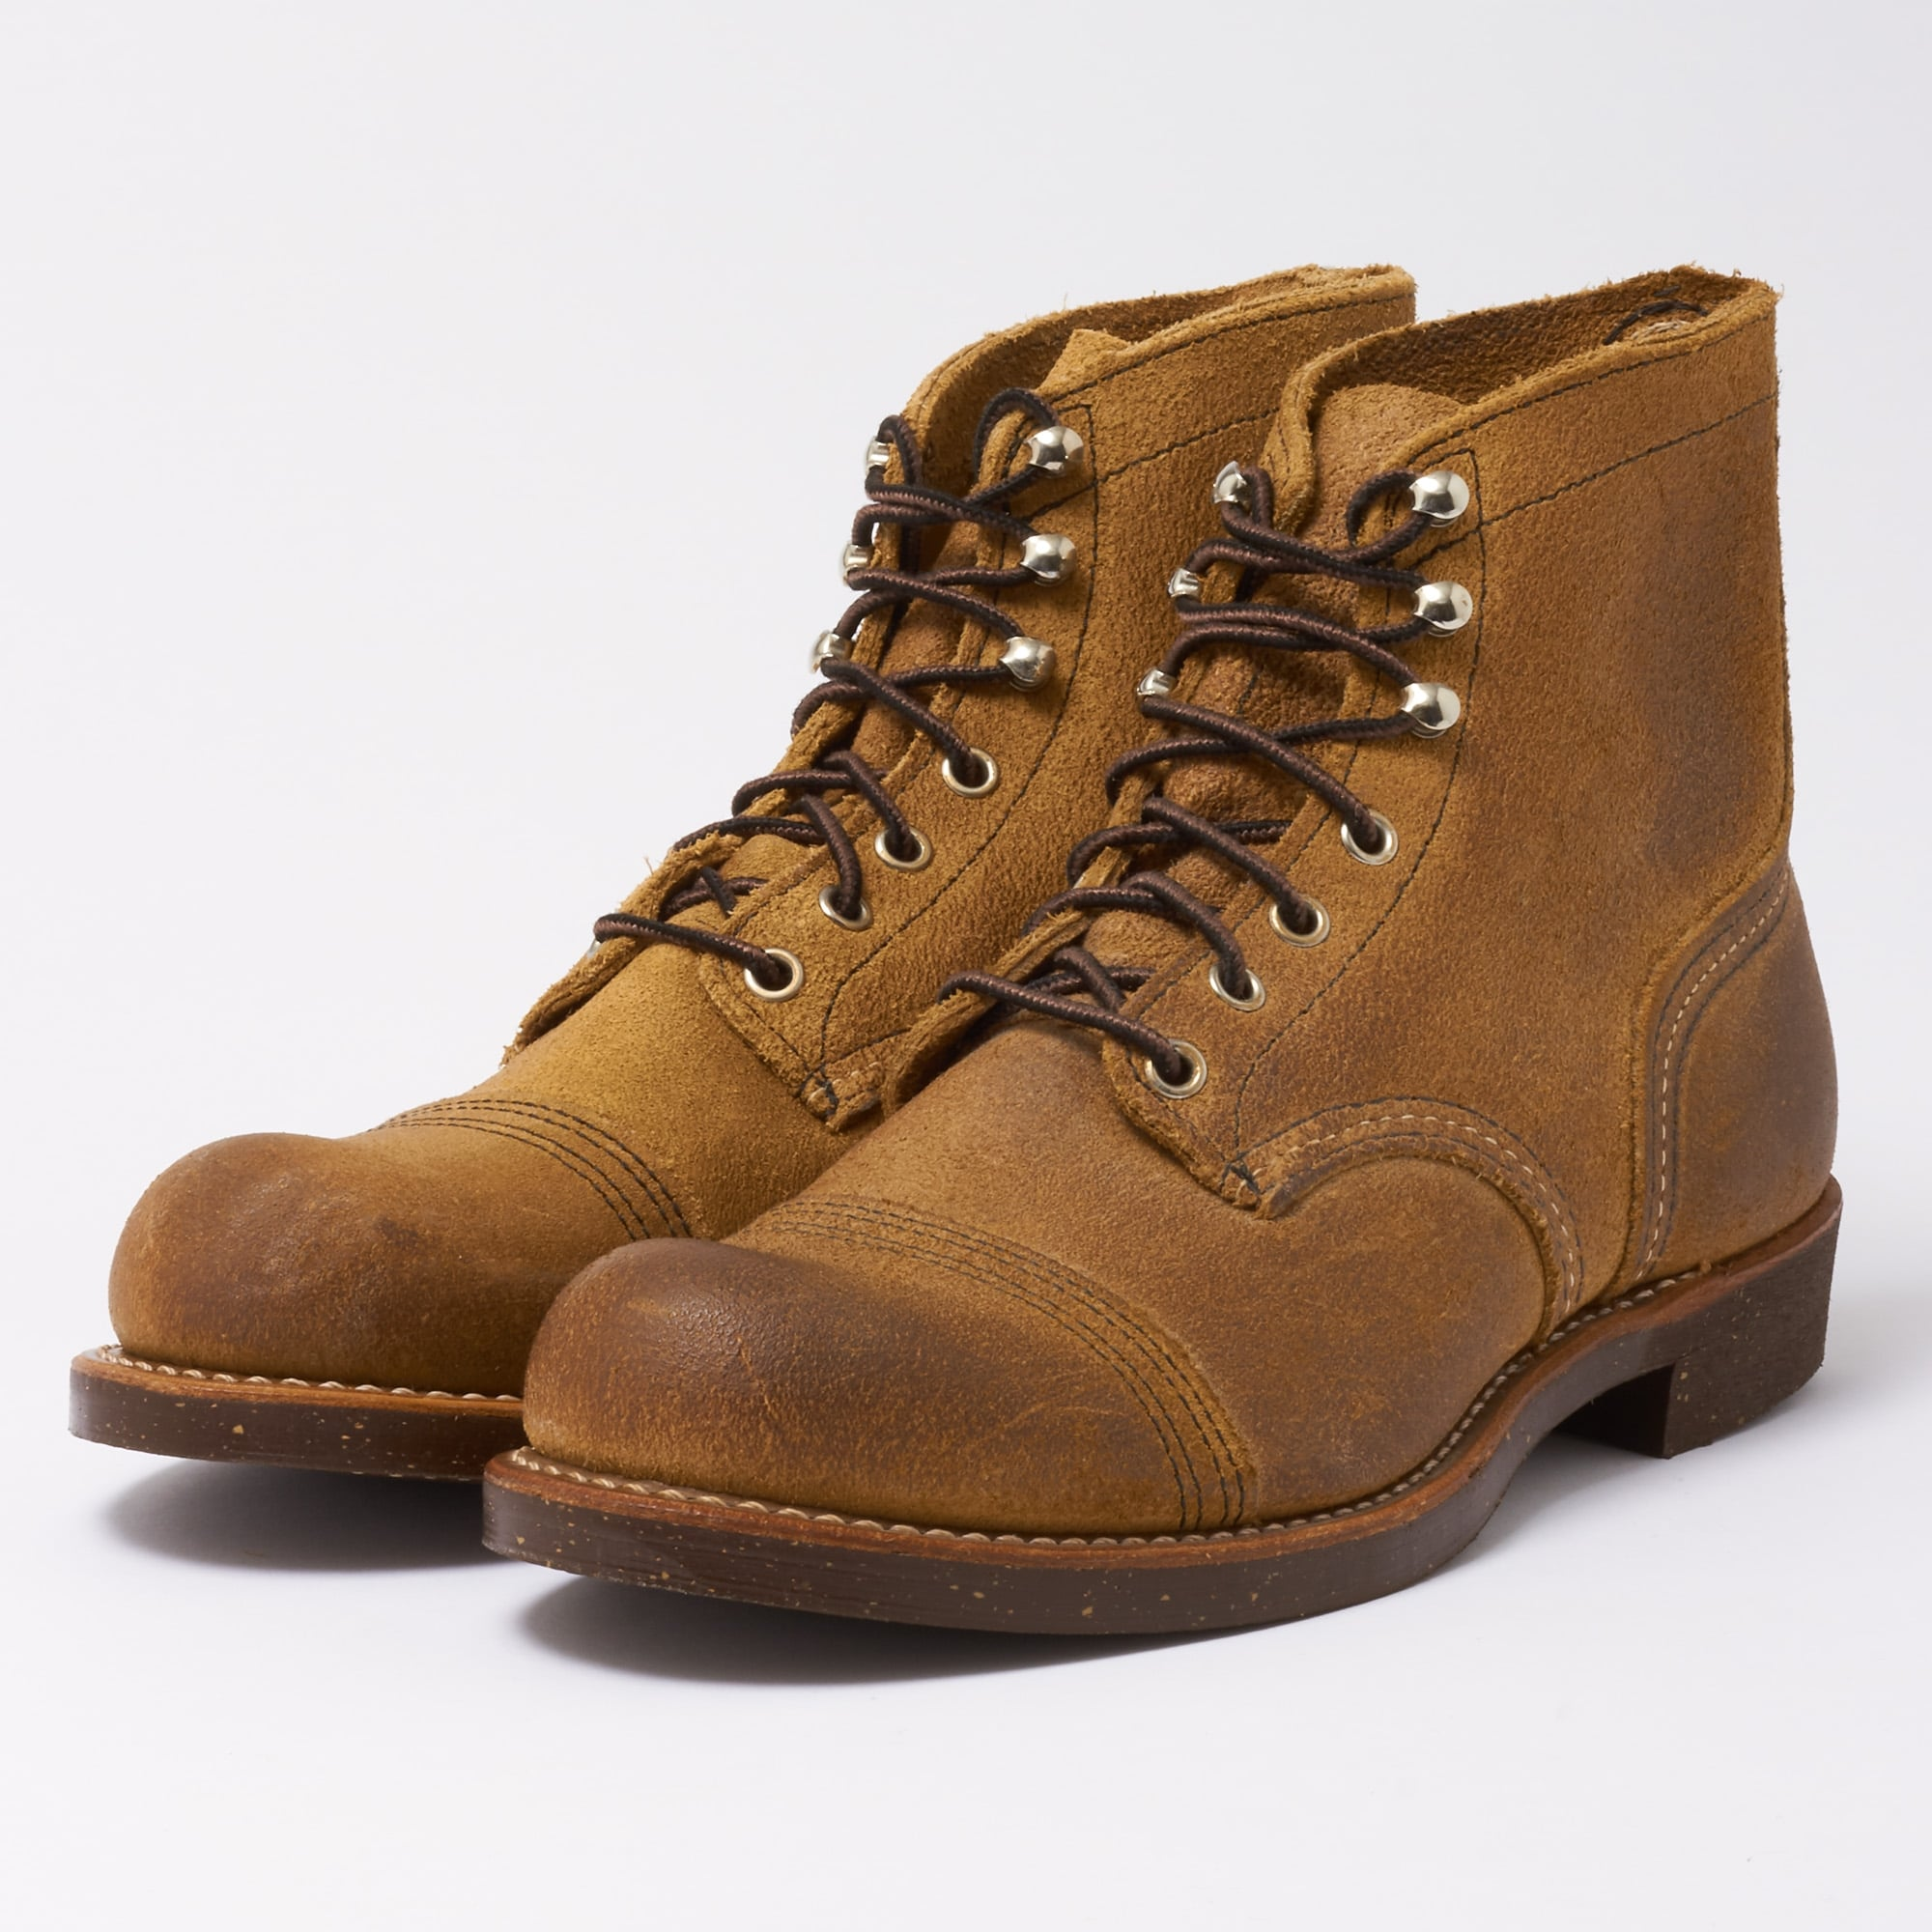 red wing shoes leather boots footwear